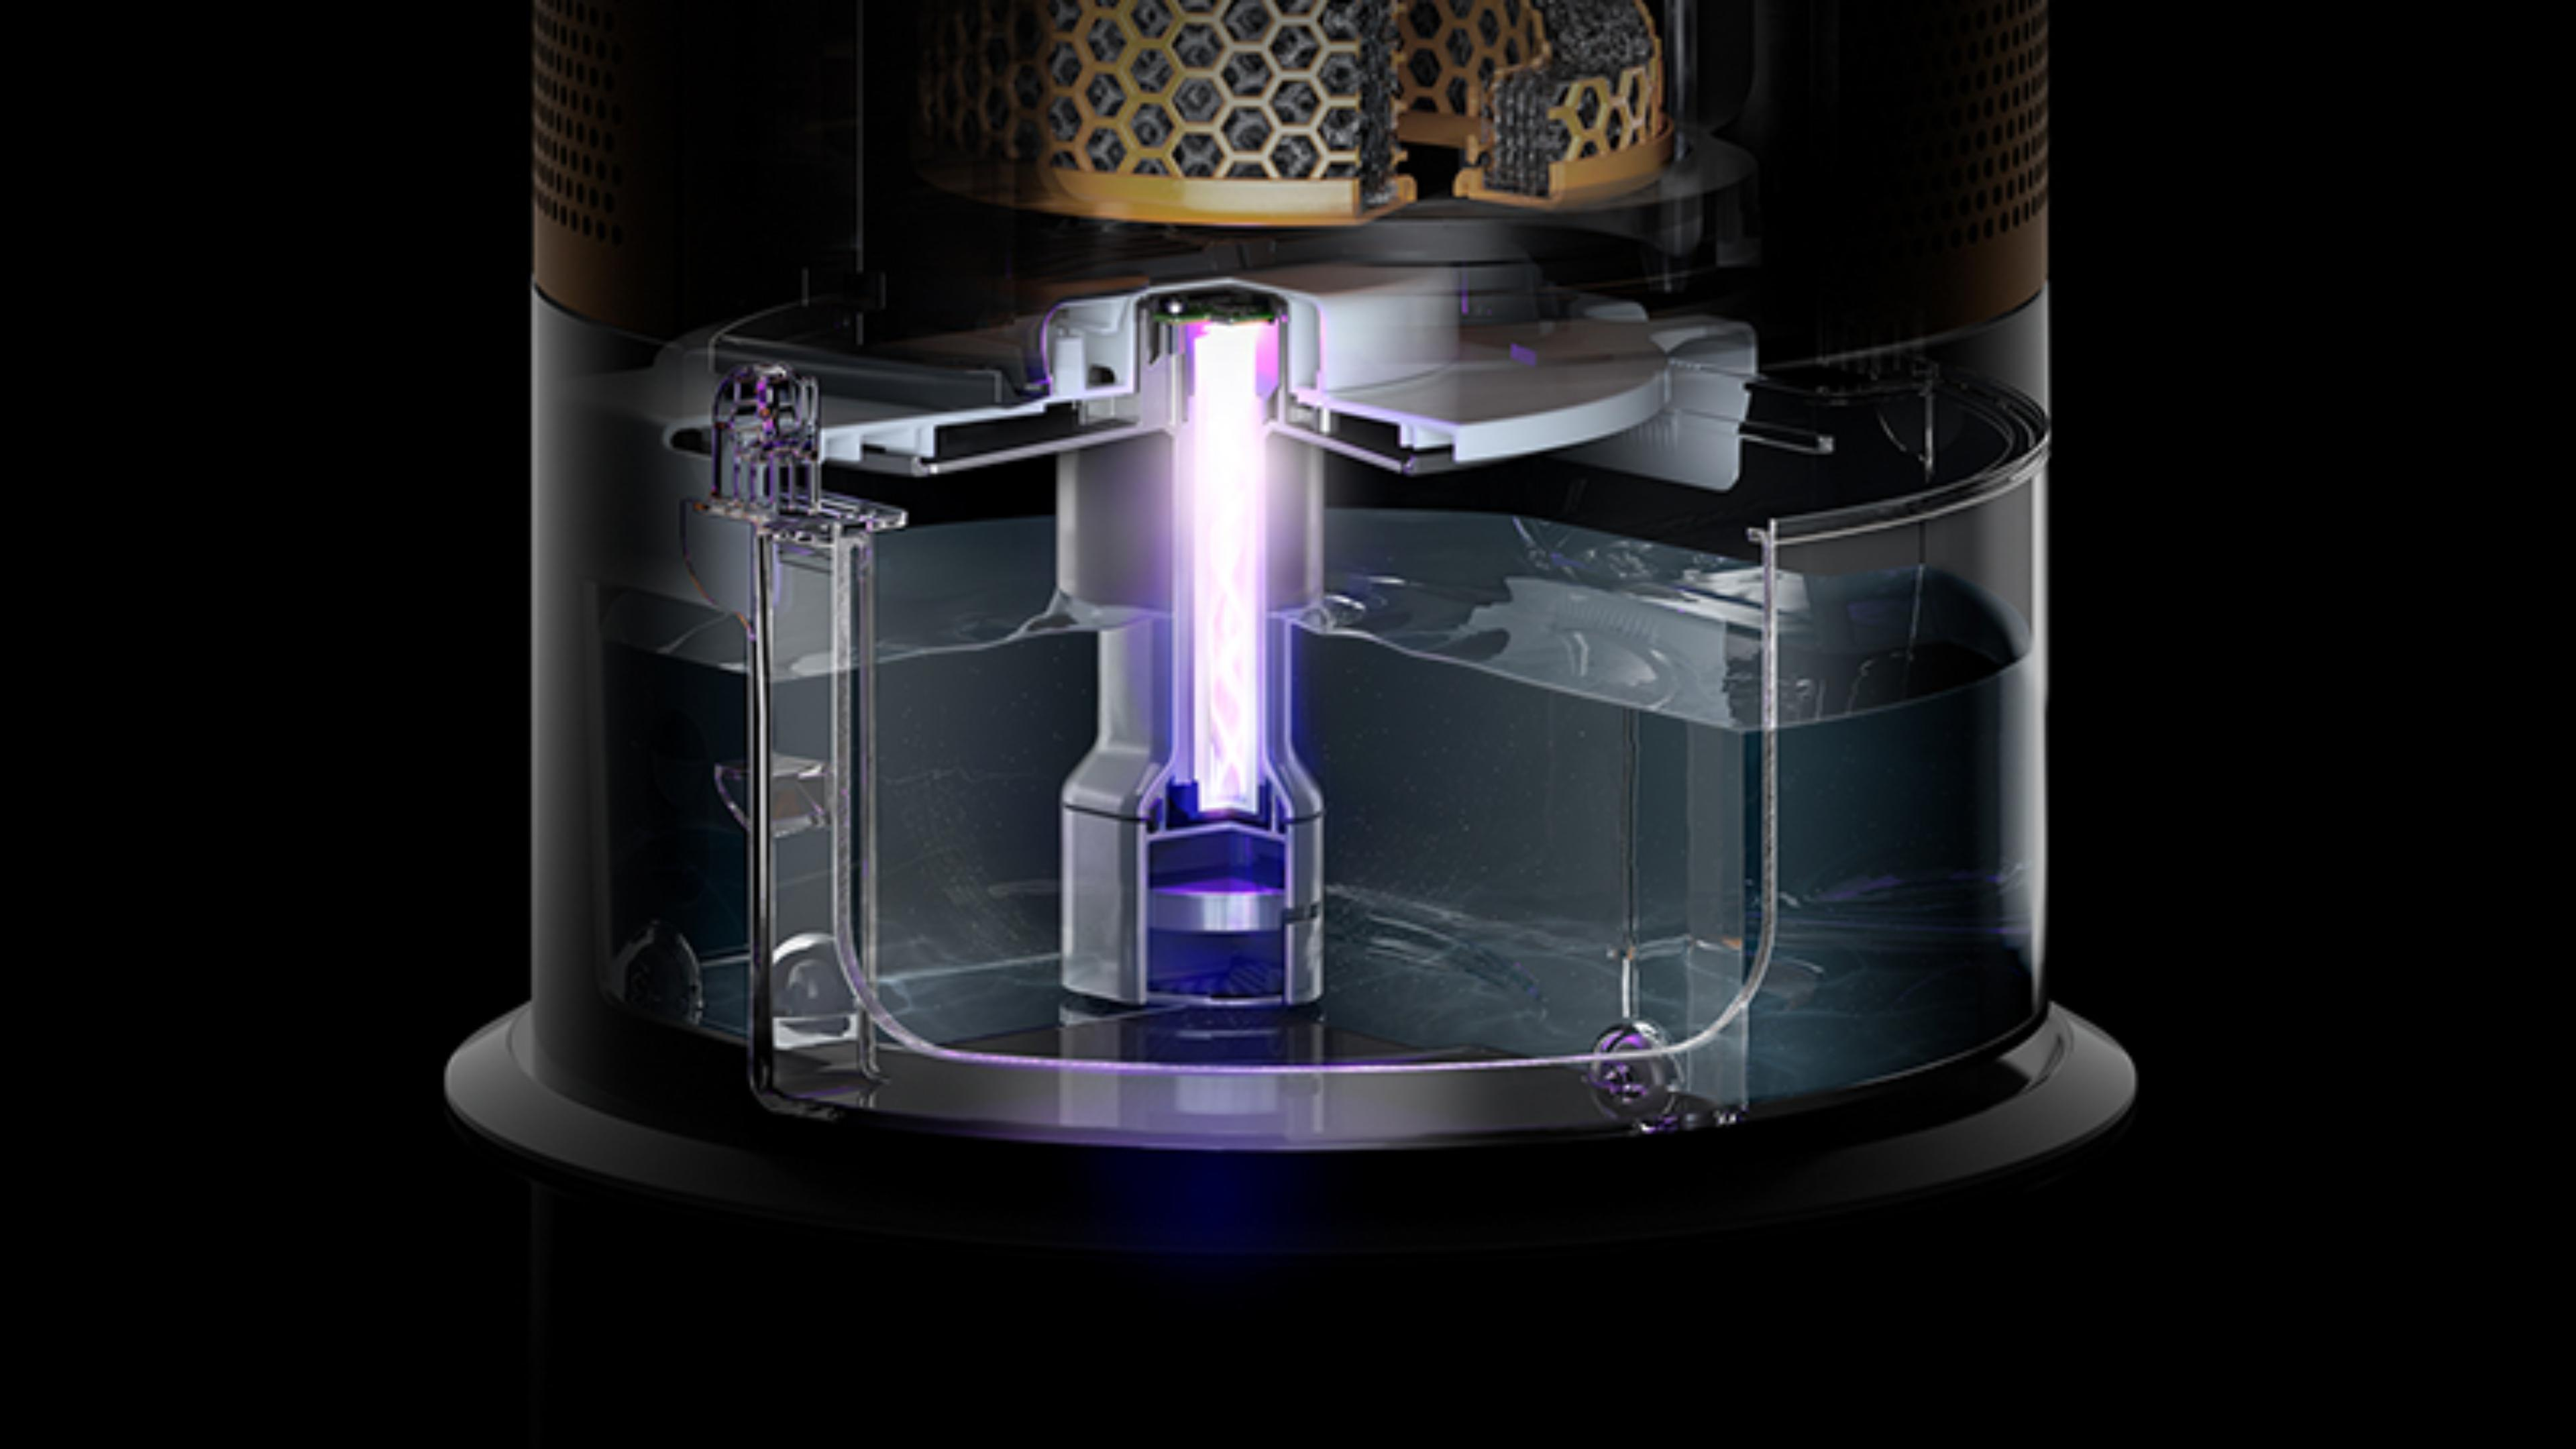 Dyson purifier filtration system capturing gases and pollutants